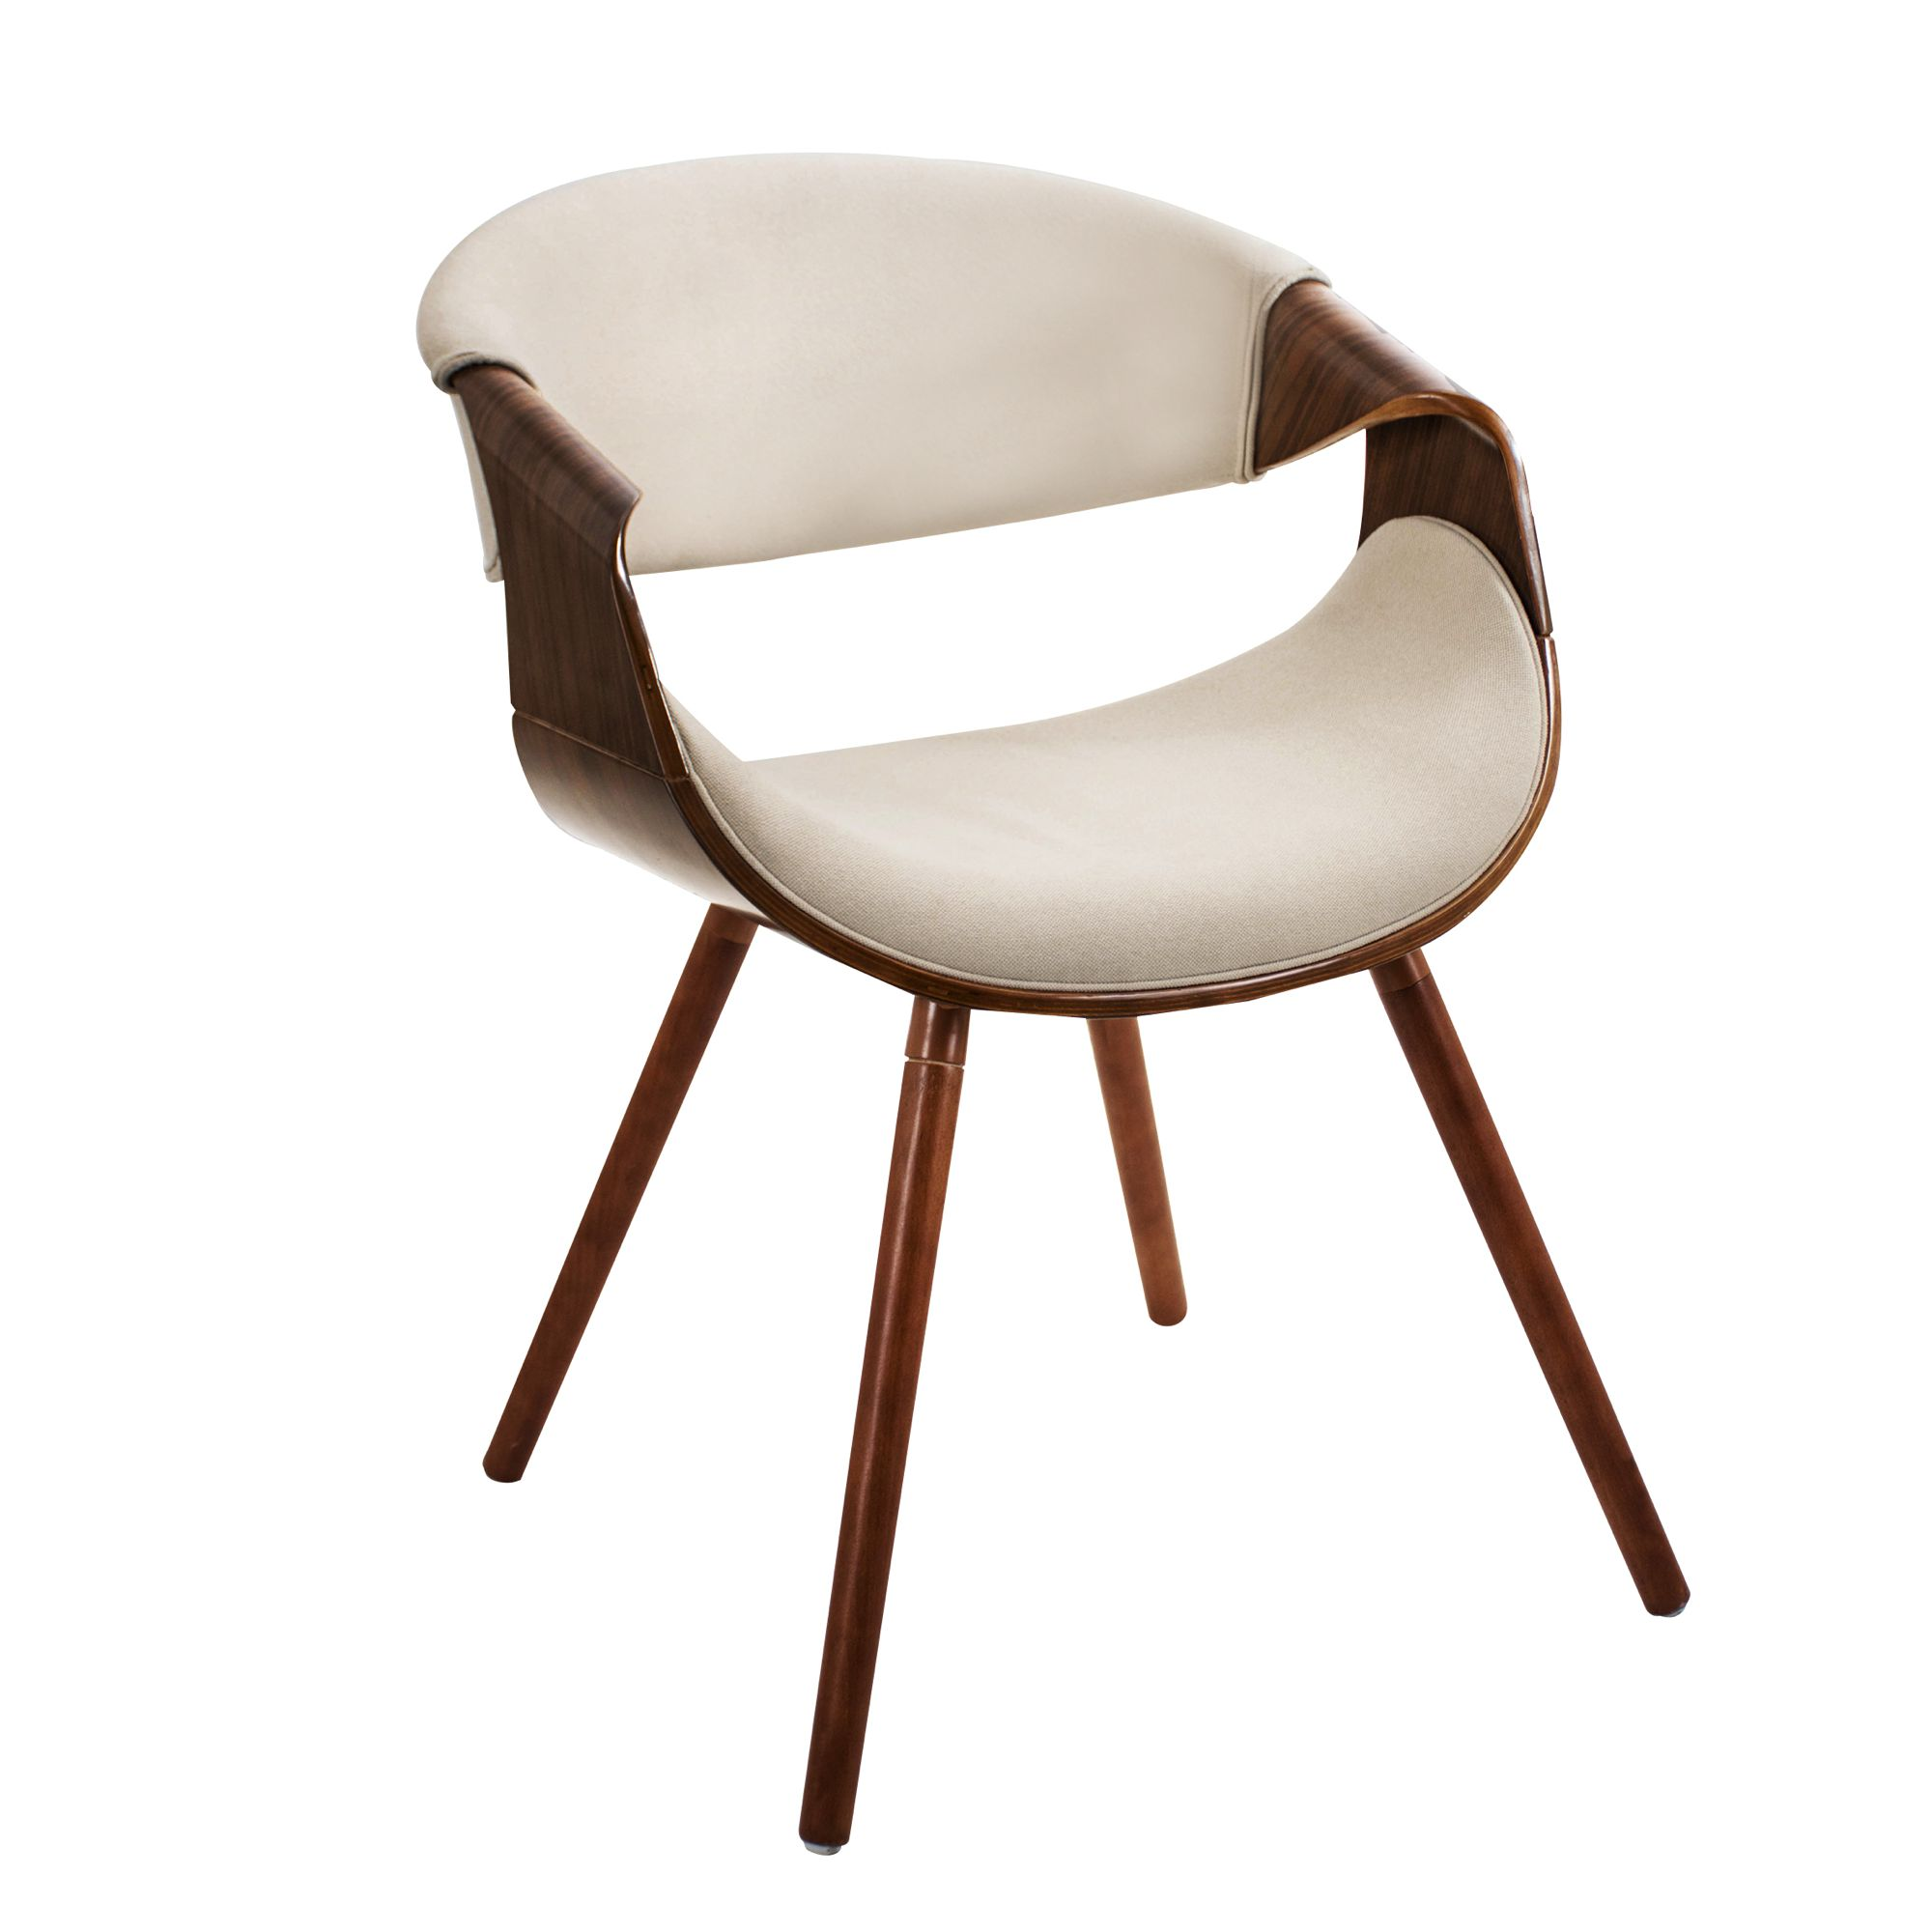 Curvo Mid-Century Modern Dining/Accent Chair in Walnut and Cream Fabric by LumiSource